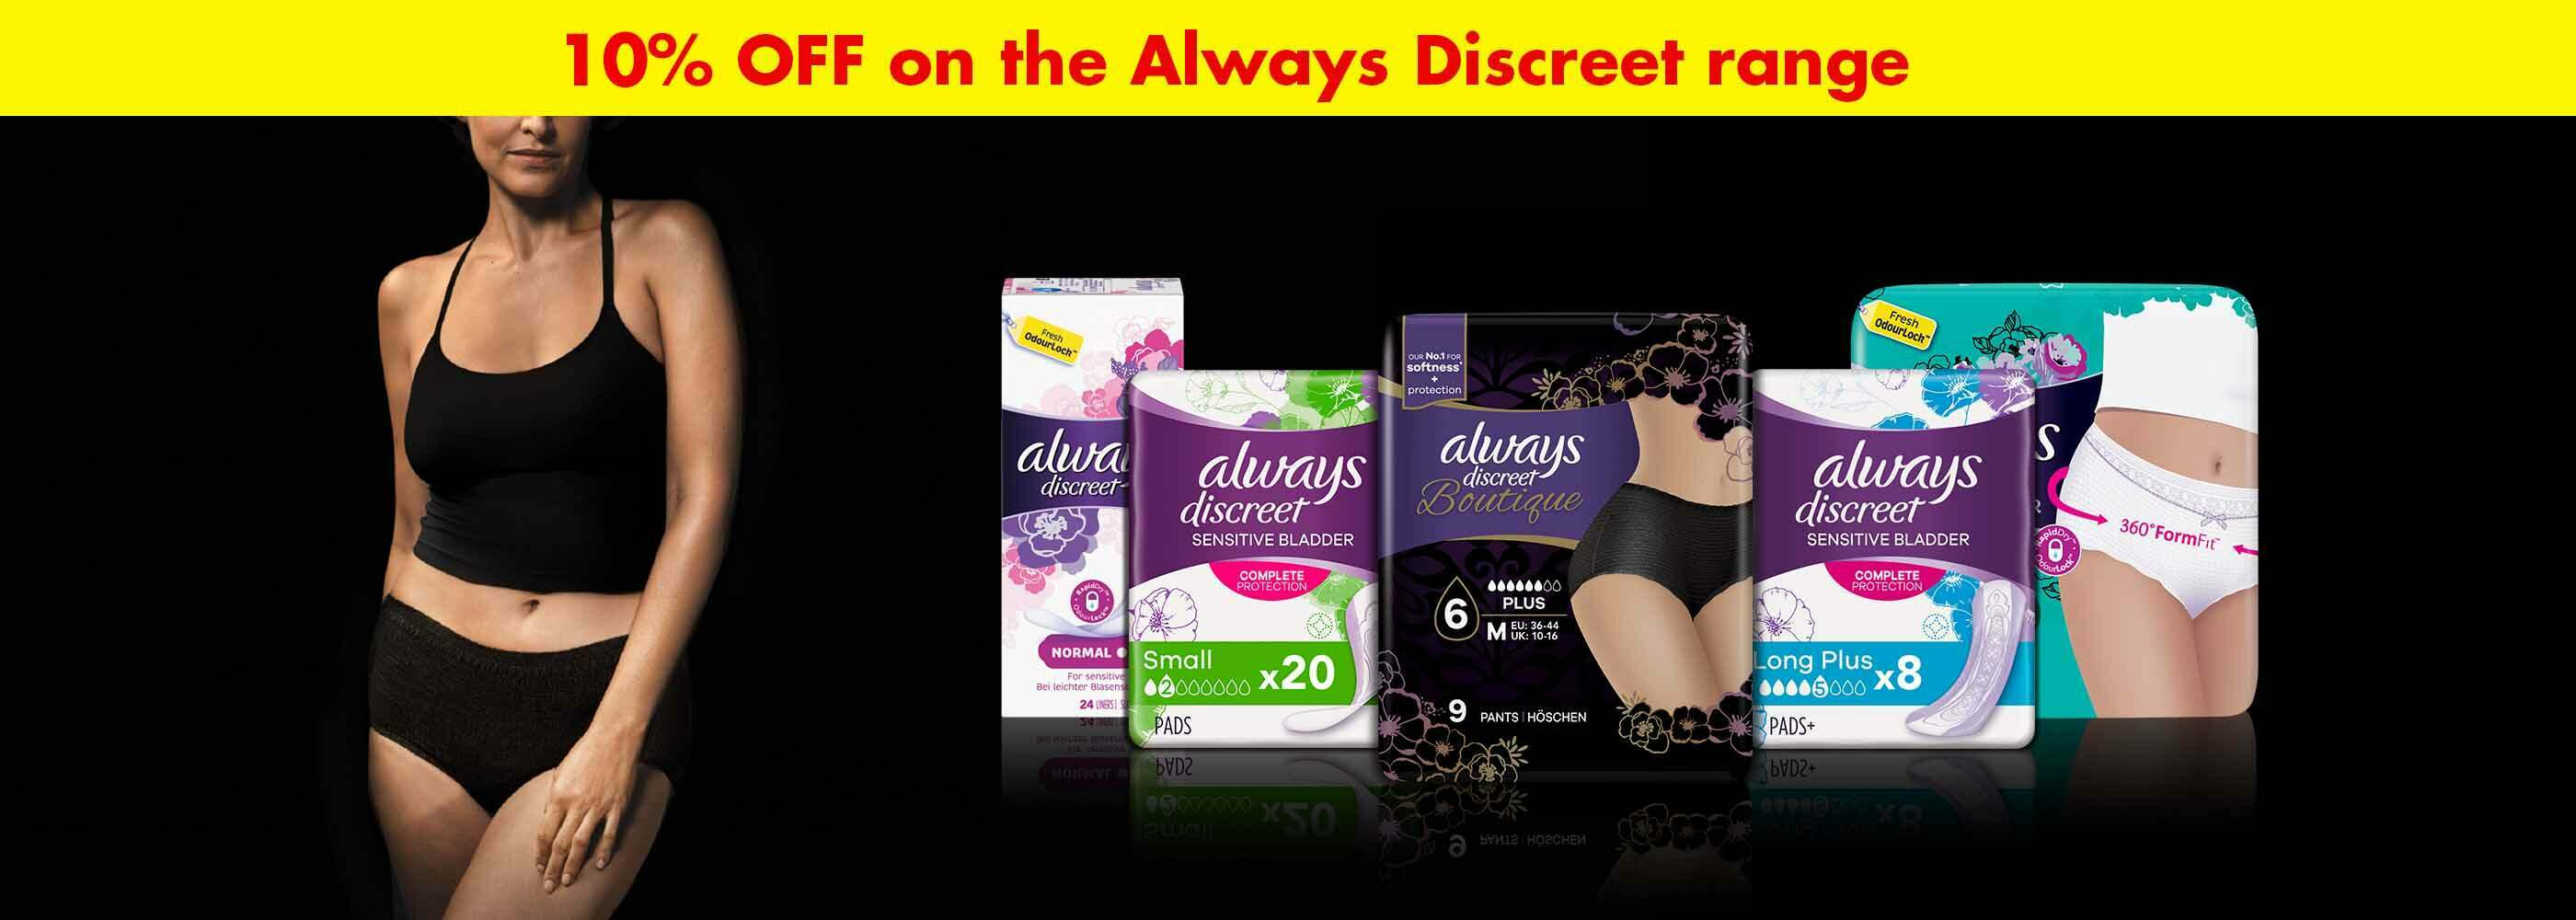 Save 10% on Always Discreet!